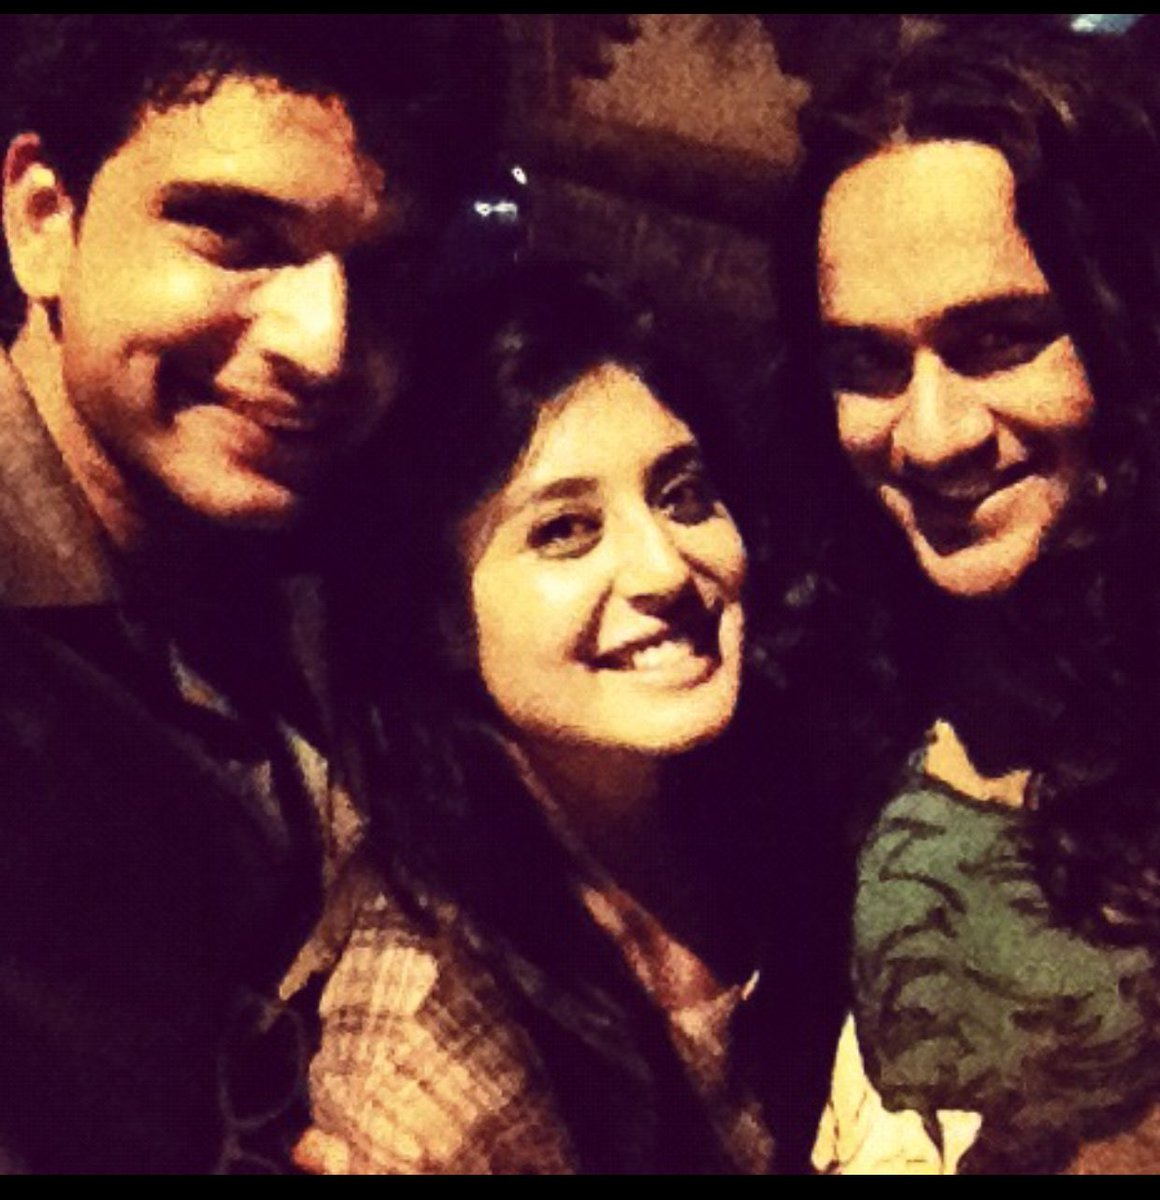 RT @kkundrra: Someone said Vikas's friends don't last for more than 8 years?? @lostboy54 https://t.co/PL6fhTqe54